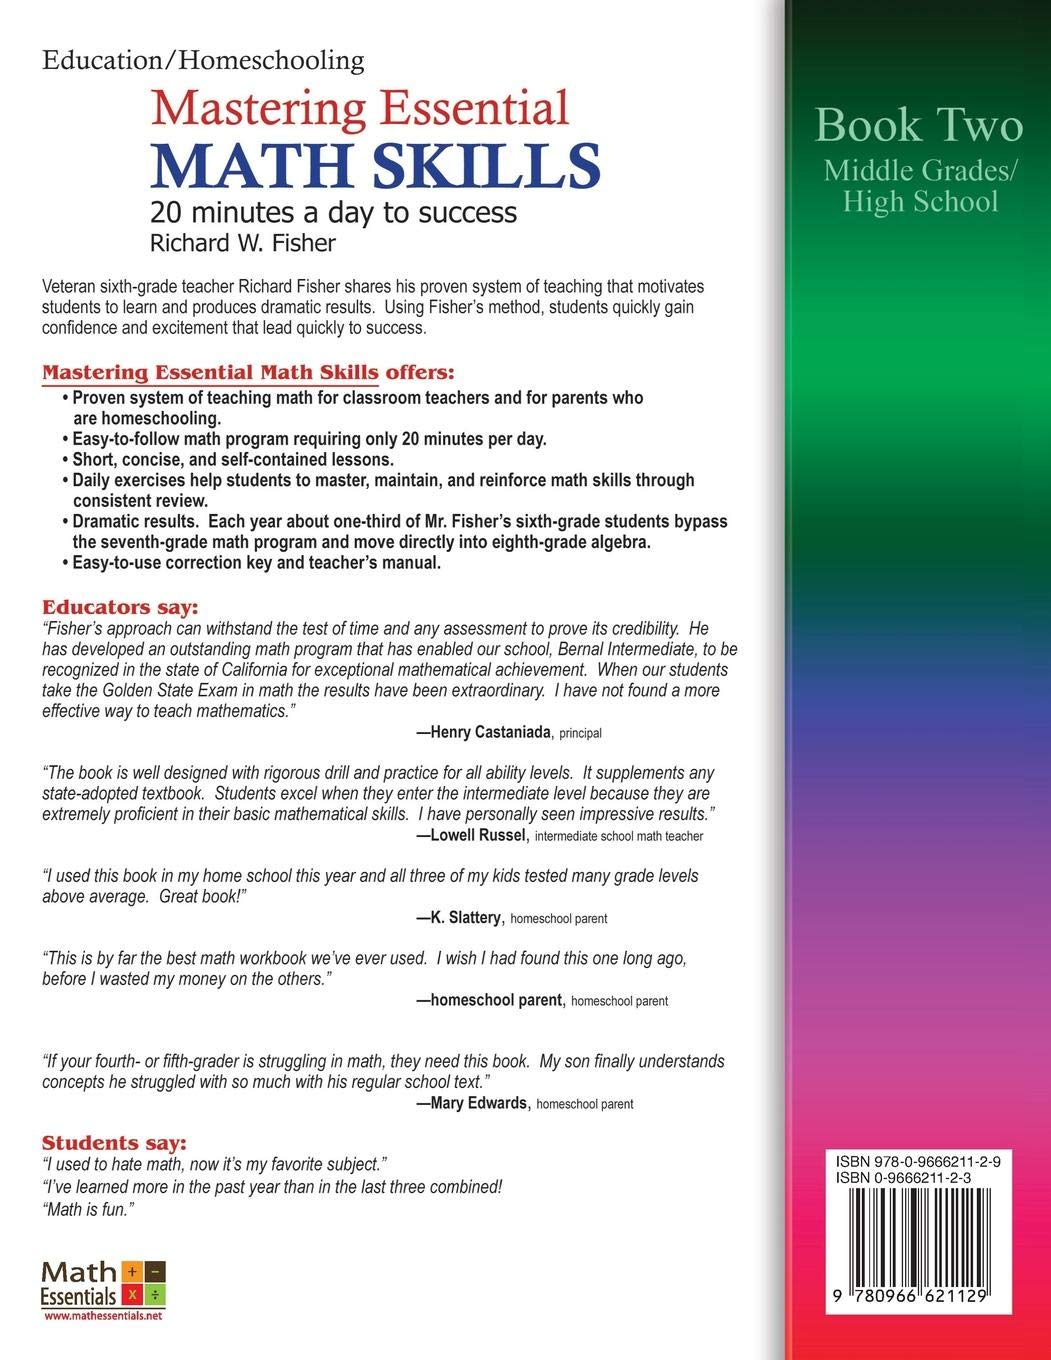 Mastering Essential Math Skills: 20 Minutes a Day to Success, Book 2